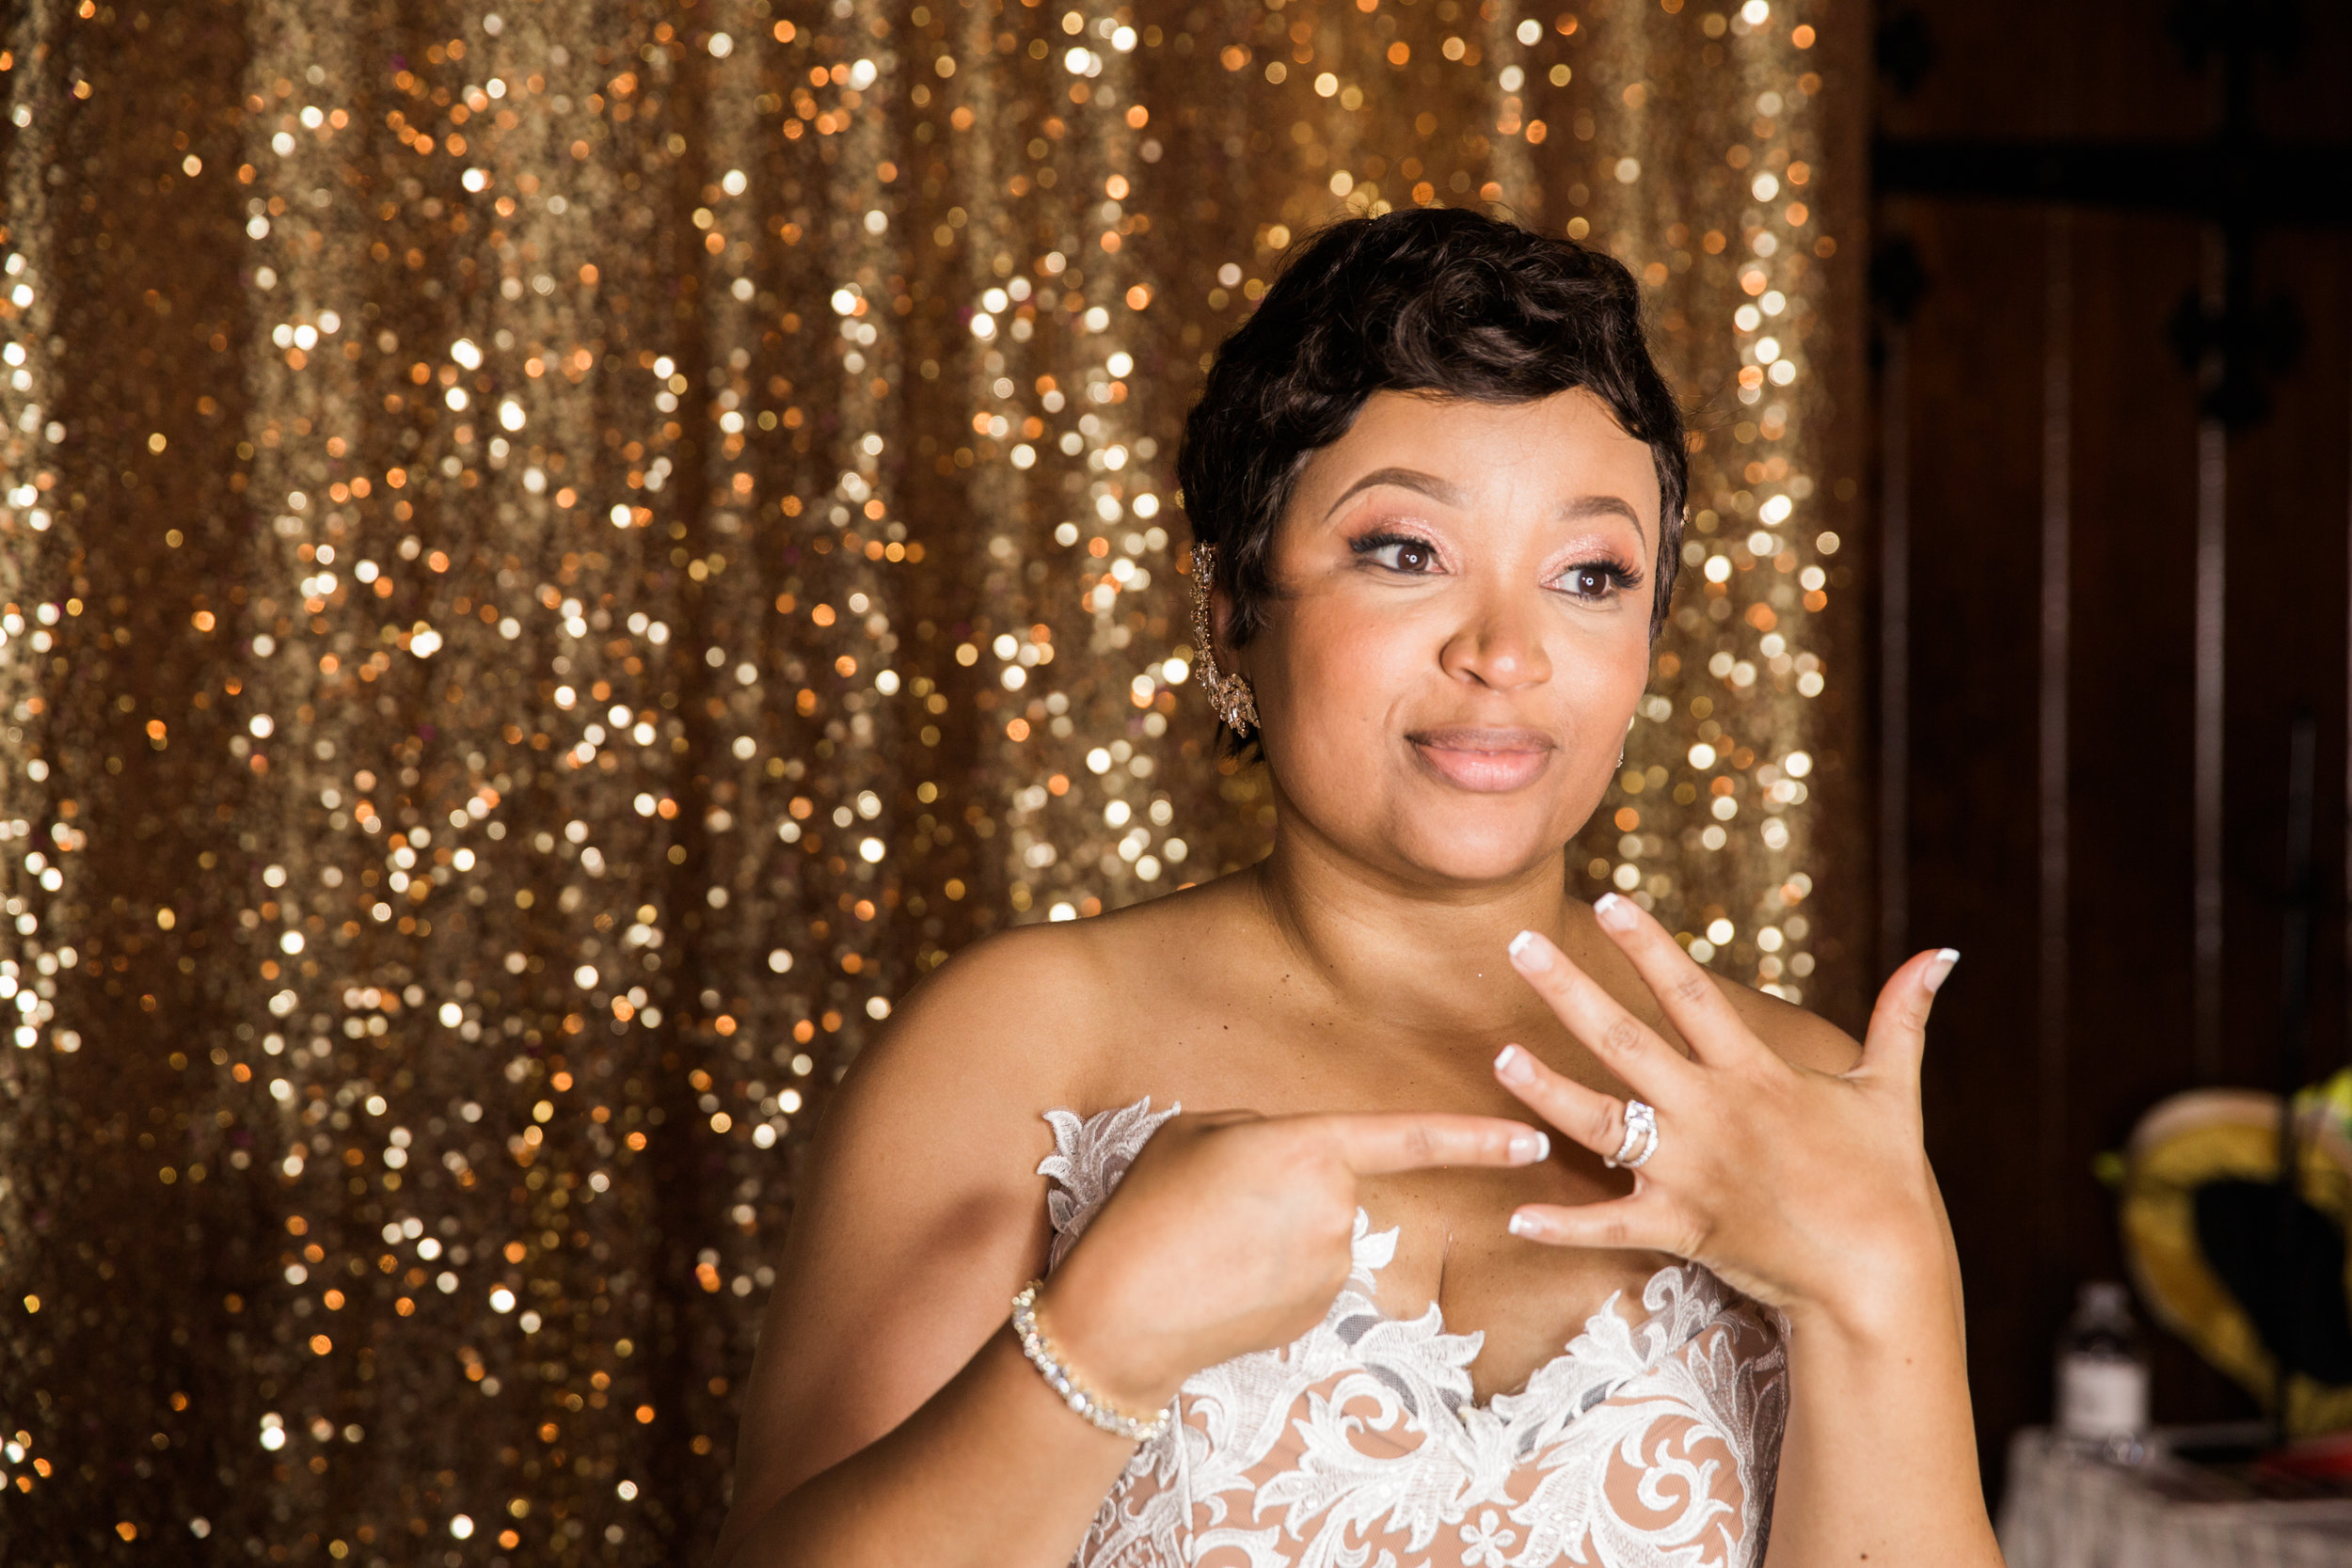 Best Classic Black Bride at The Grand Baltimore Maryland Husband and Wife Wedding Photographers Megapixels Media (92 of 98).jpg